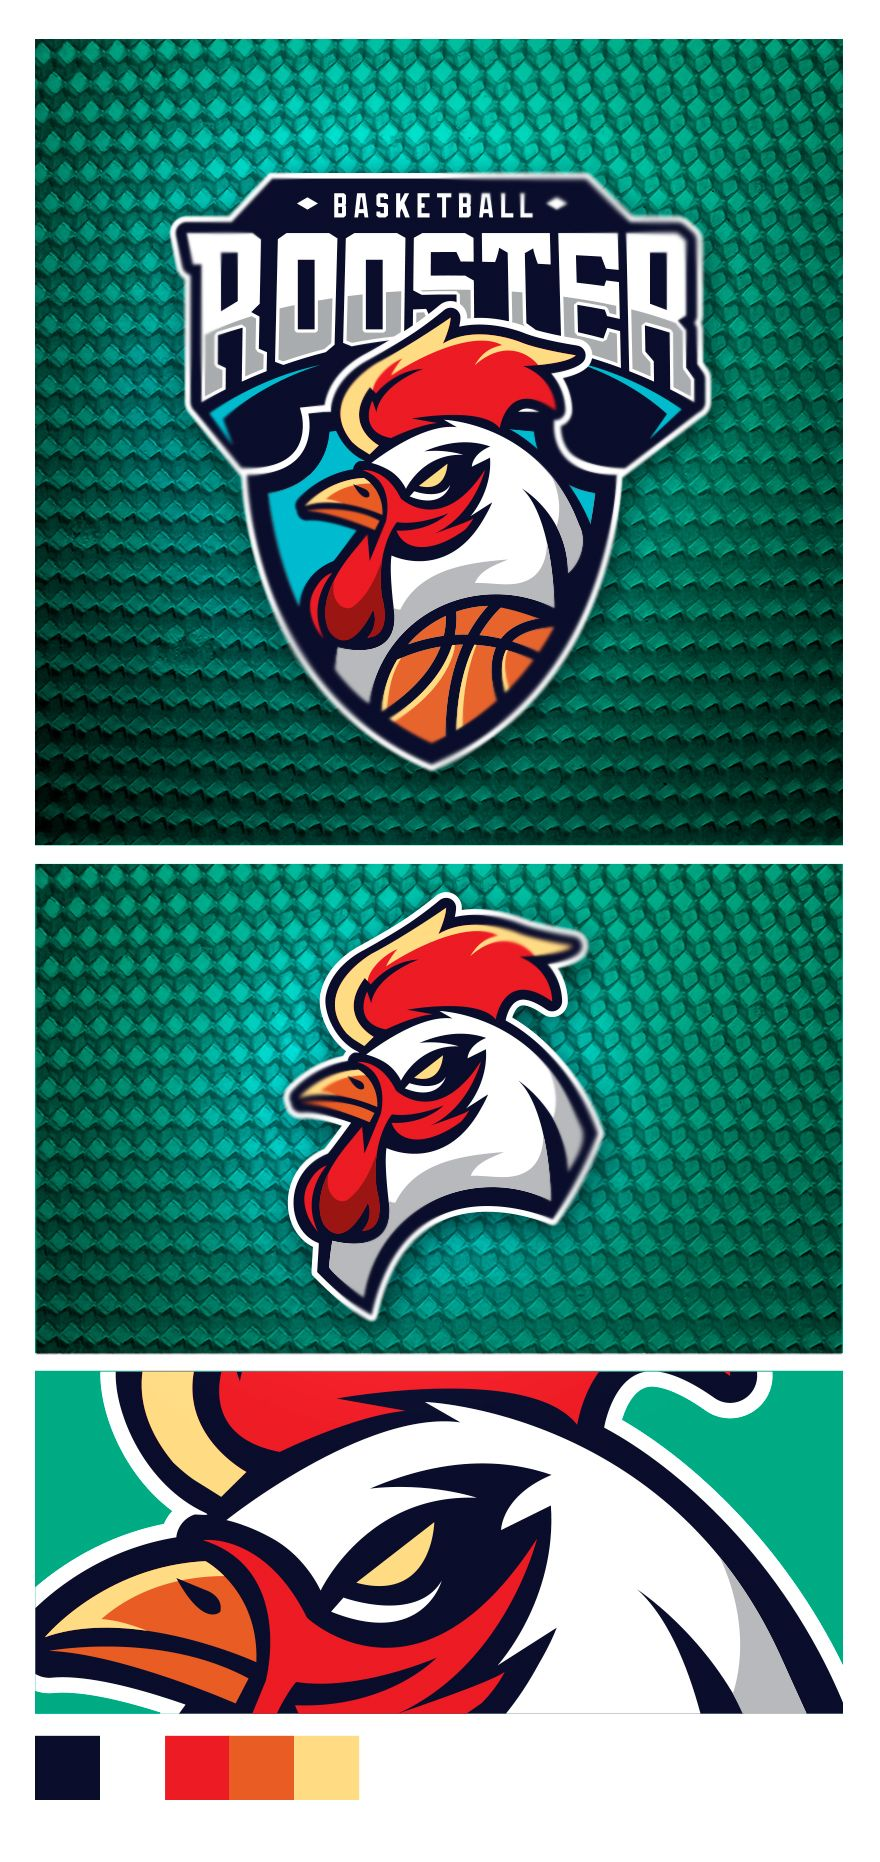 Rooster Basketball on Behance Sports logo design, Sports